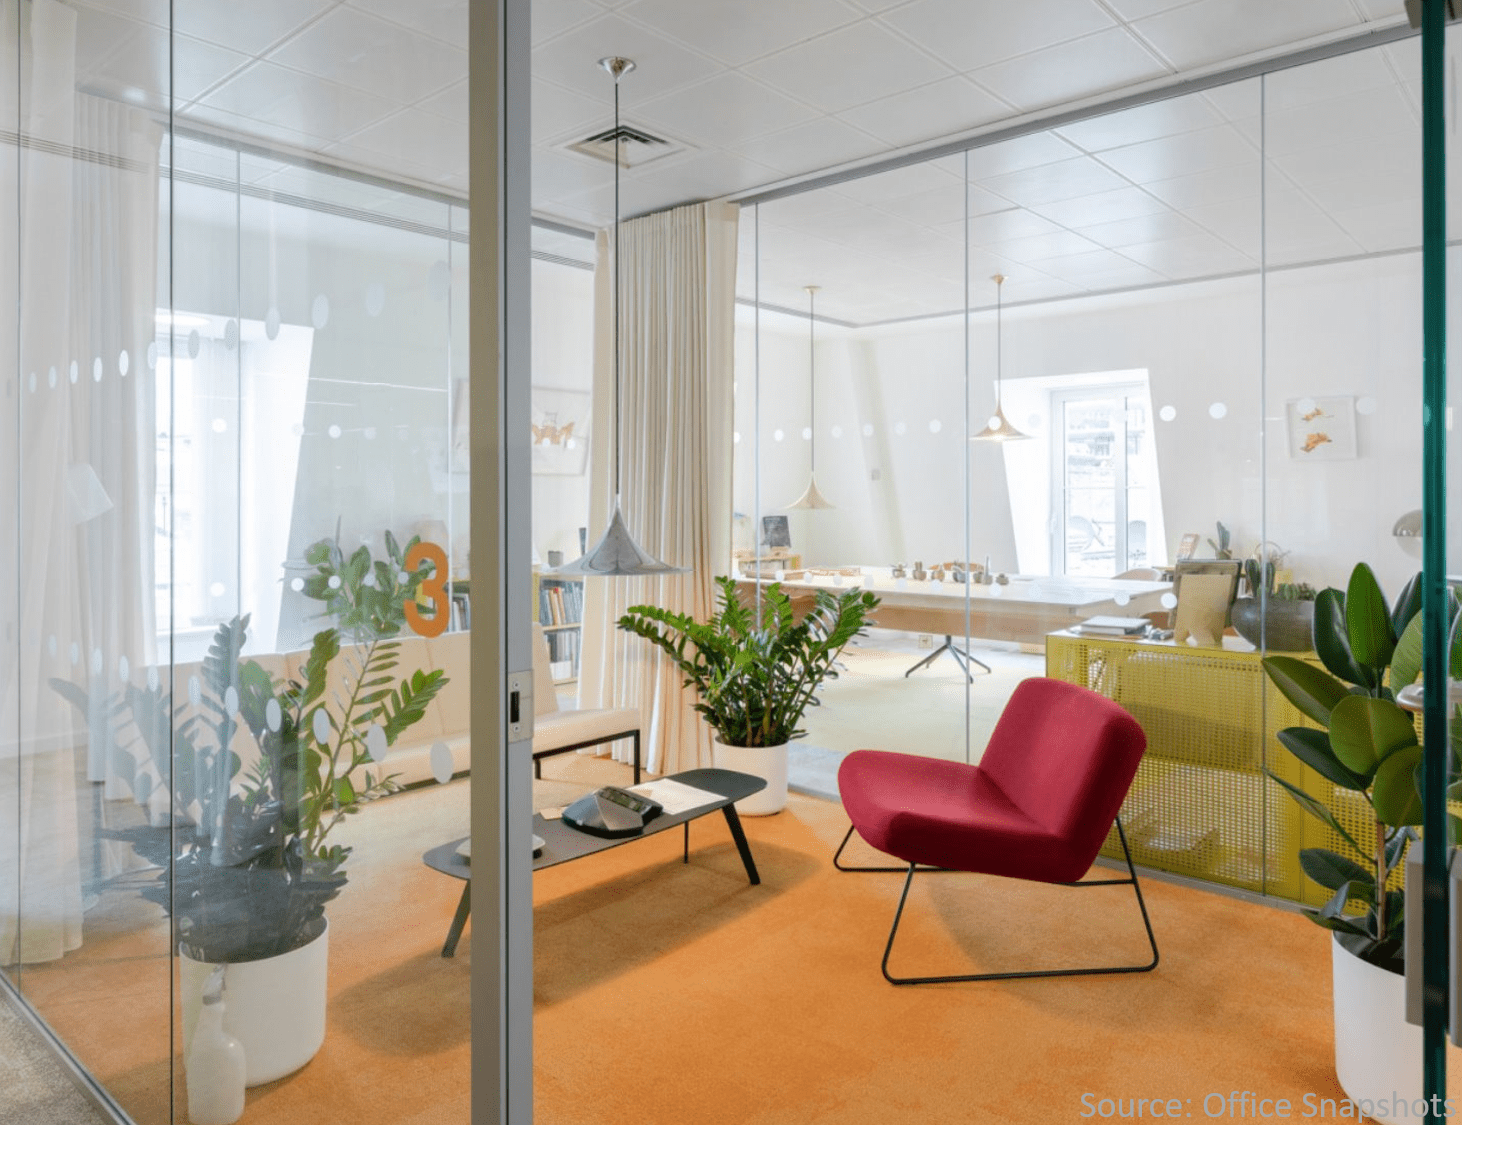 Collaberation-room-with-office-greenery